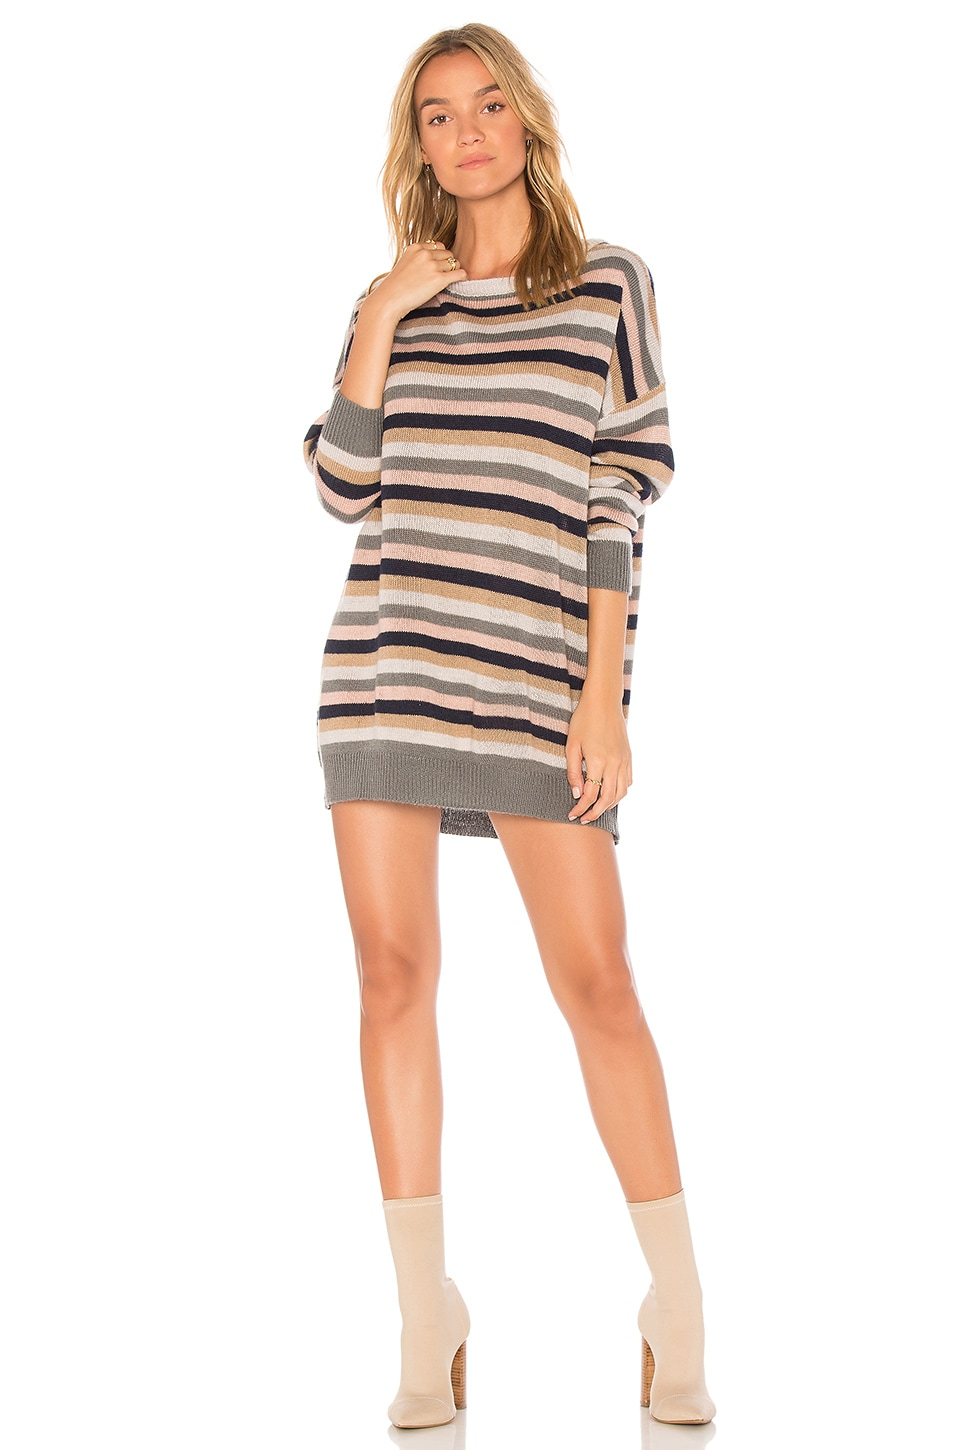 Tularosa Hamptons Dress in Stripe